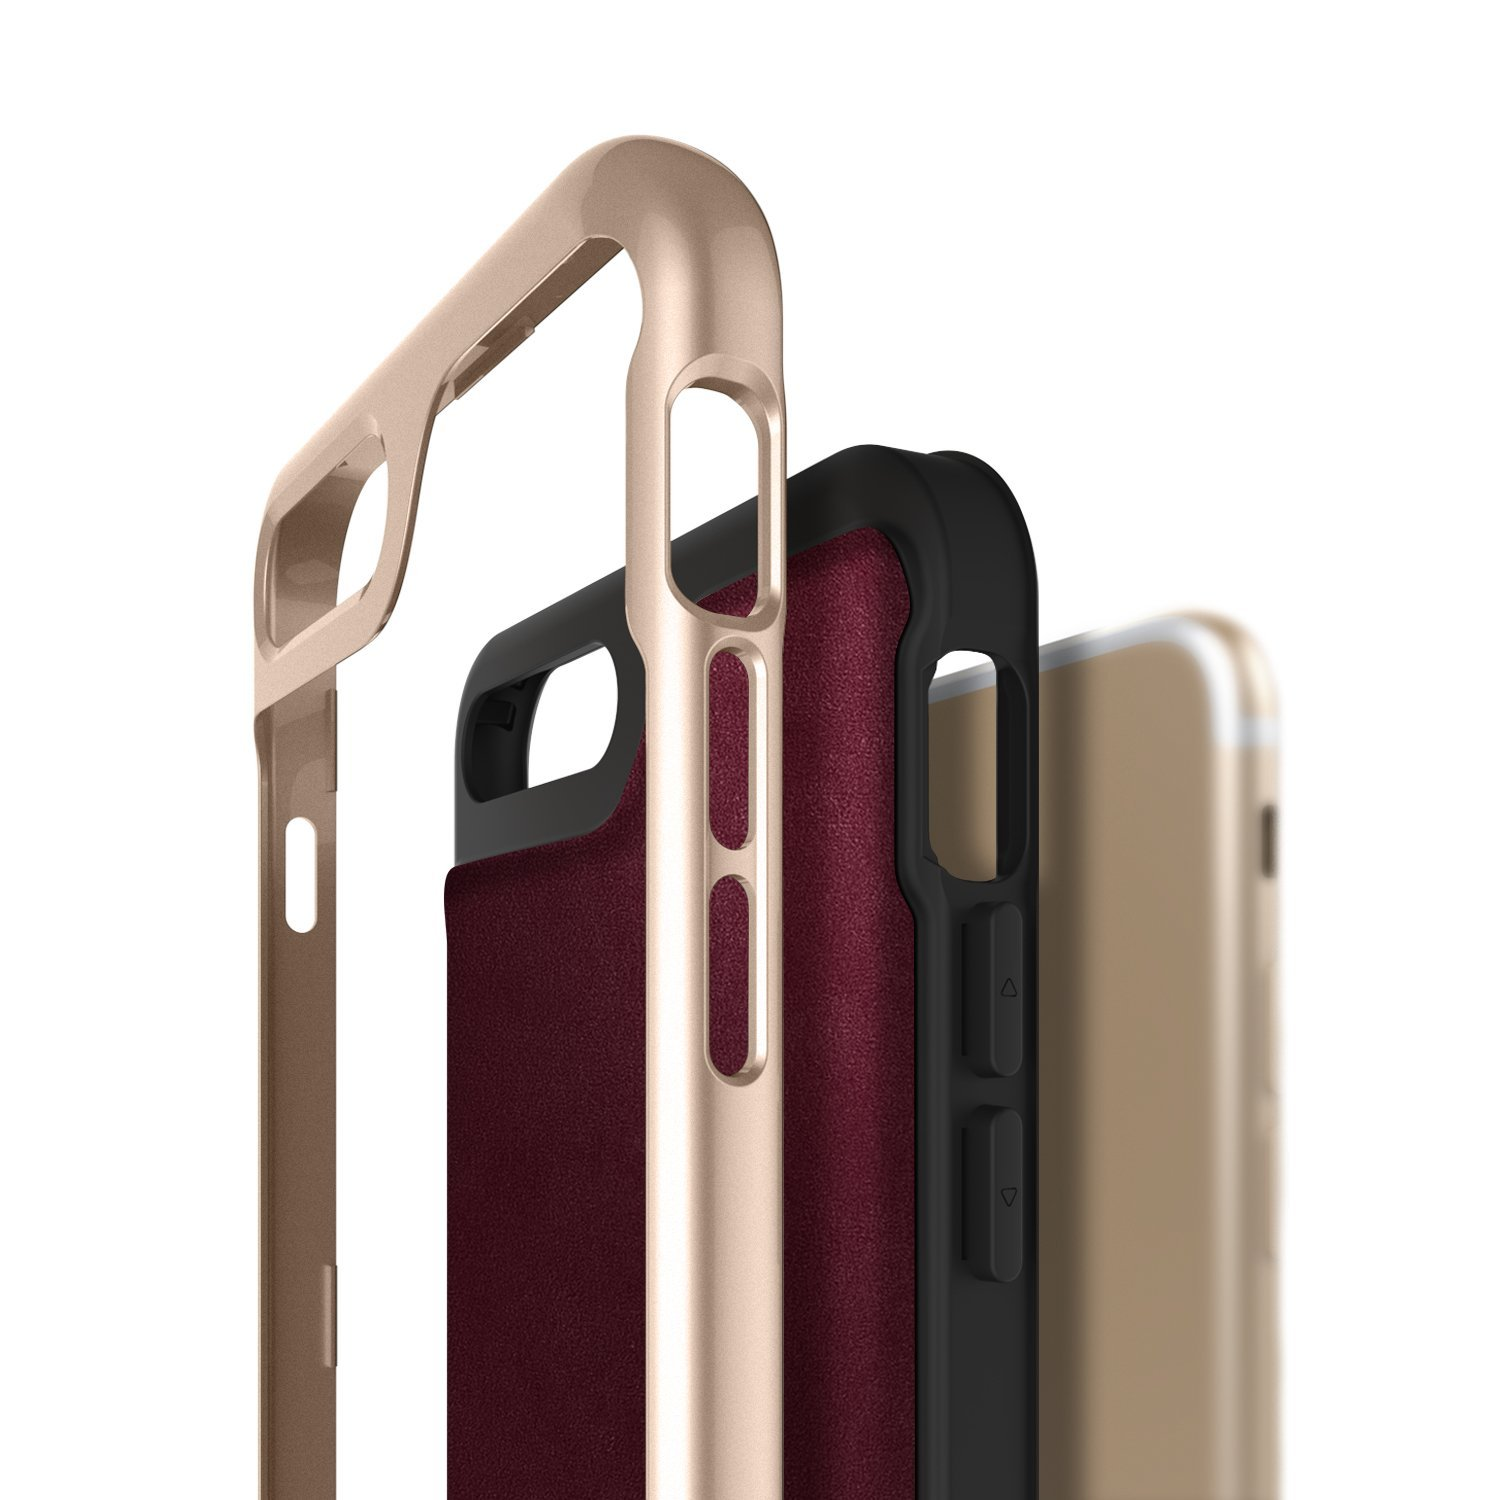 Caseology Envoy Series iPhone 7 Plus Case - Leather Cherry Oak